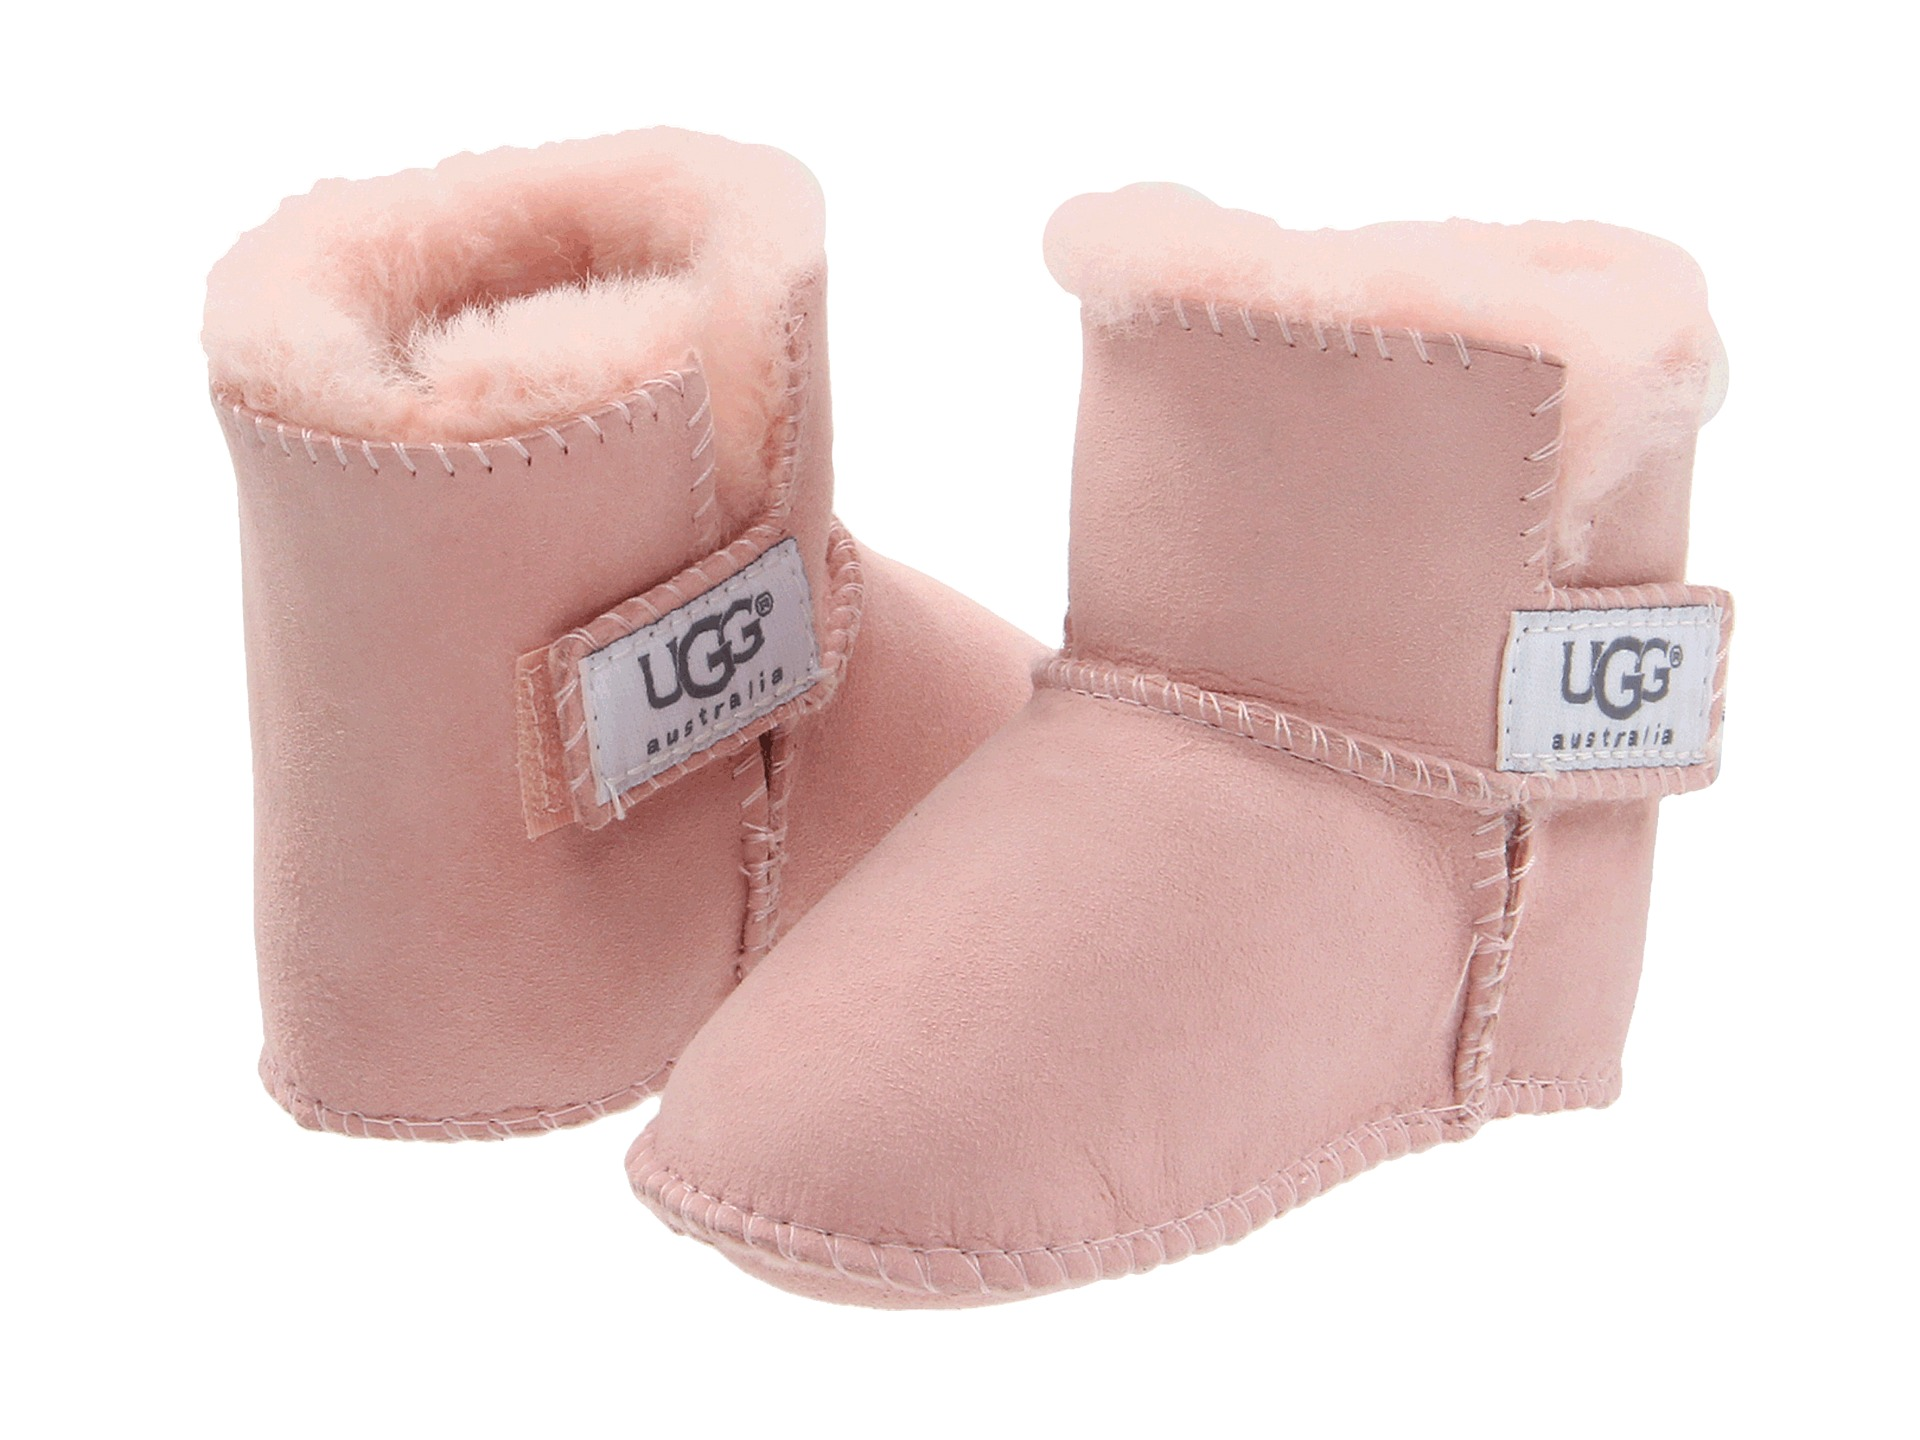 Shop for and buy baby uggs on sale online at Macy's. Find baby uggs on sale at Macy's.